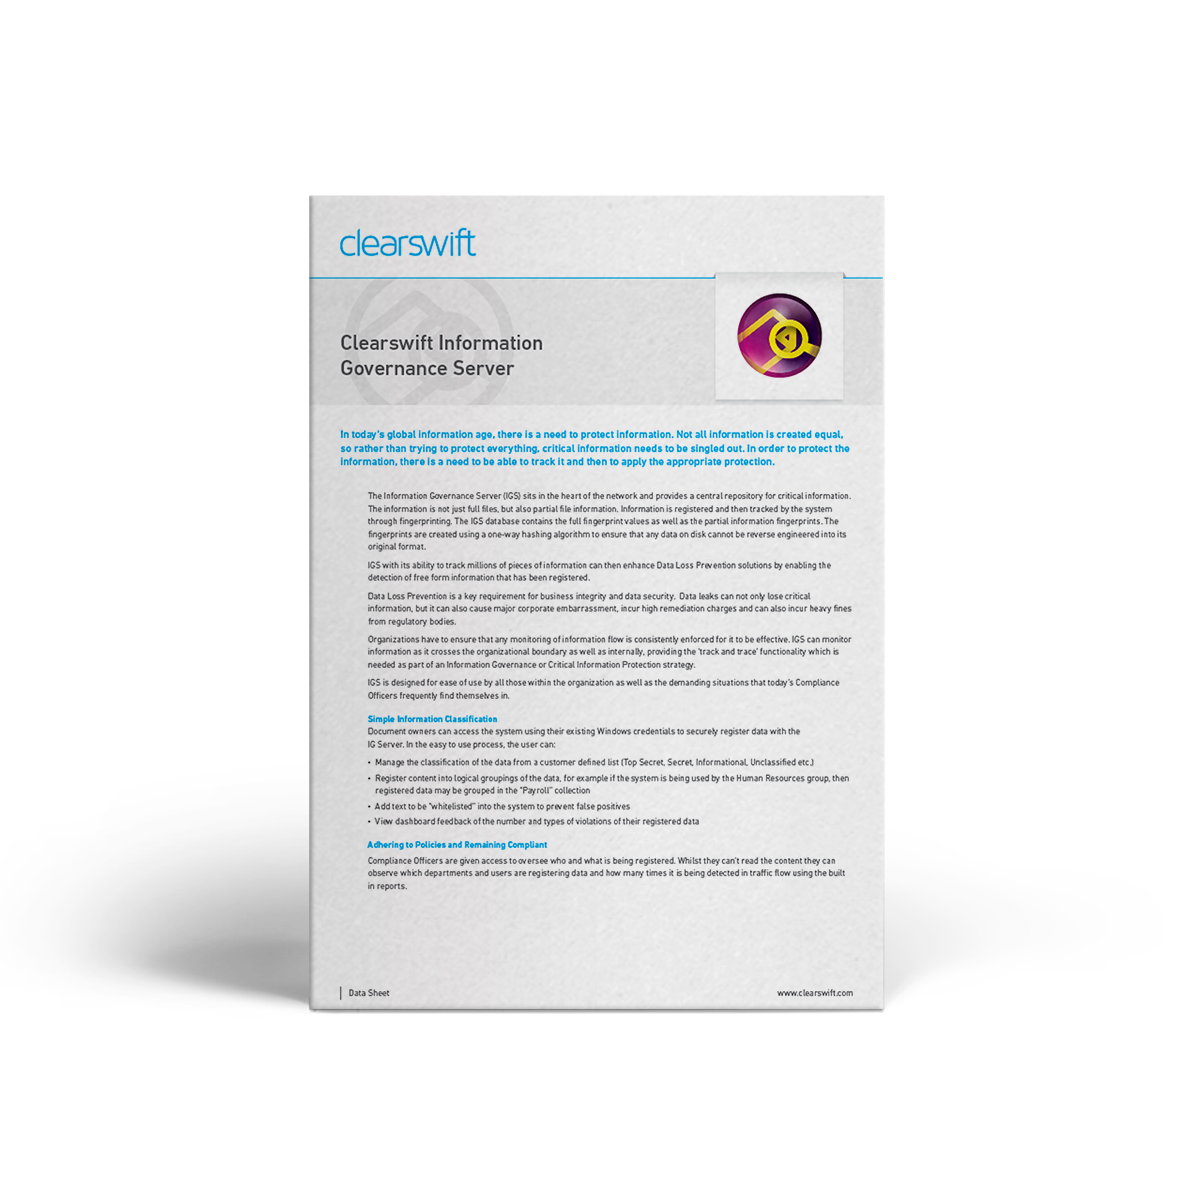 Clearswift IGS datasheet